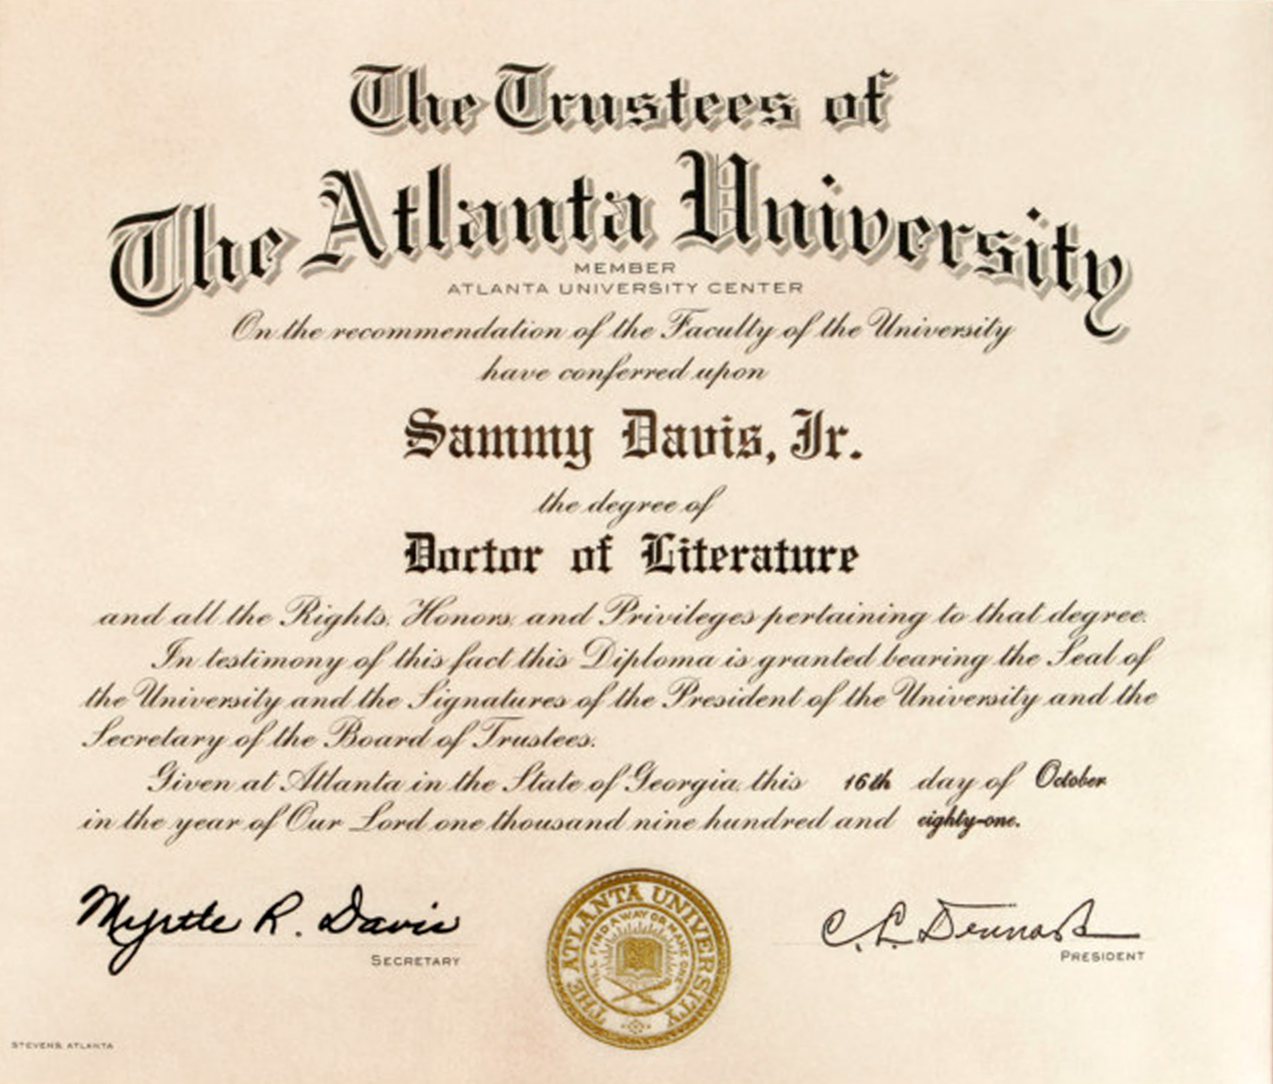 Sammy Davis, Jr. Degree from Atlanta University